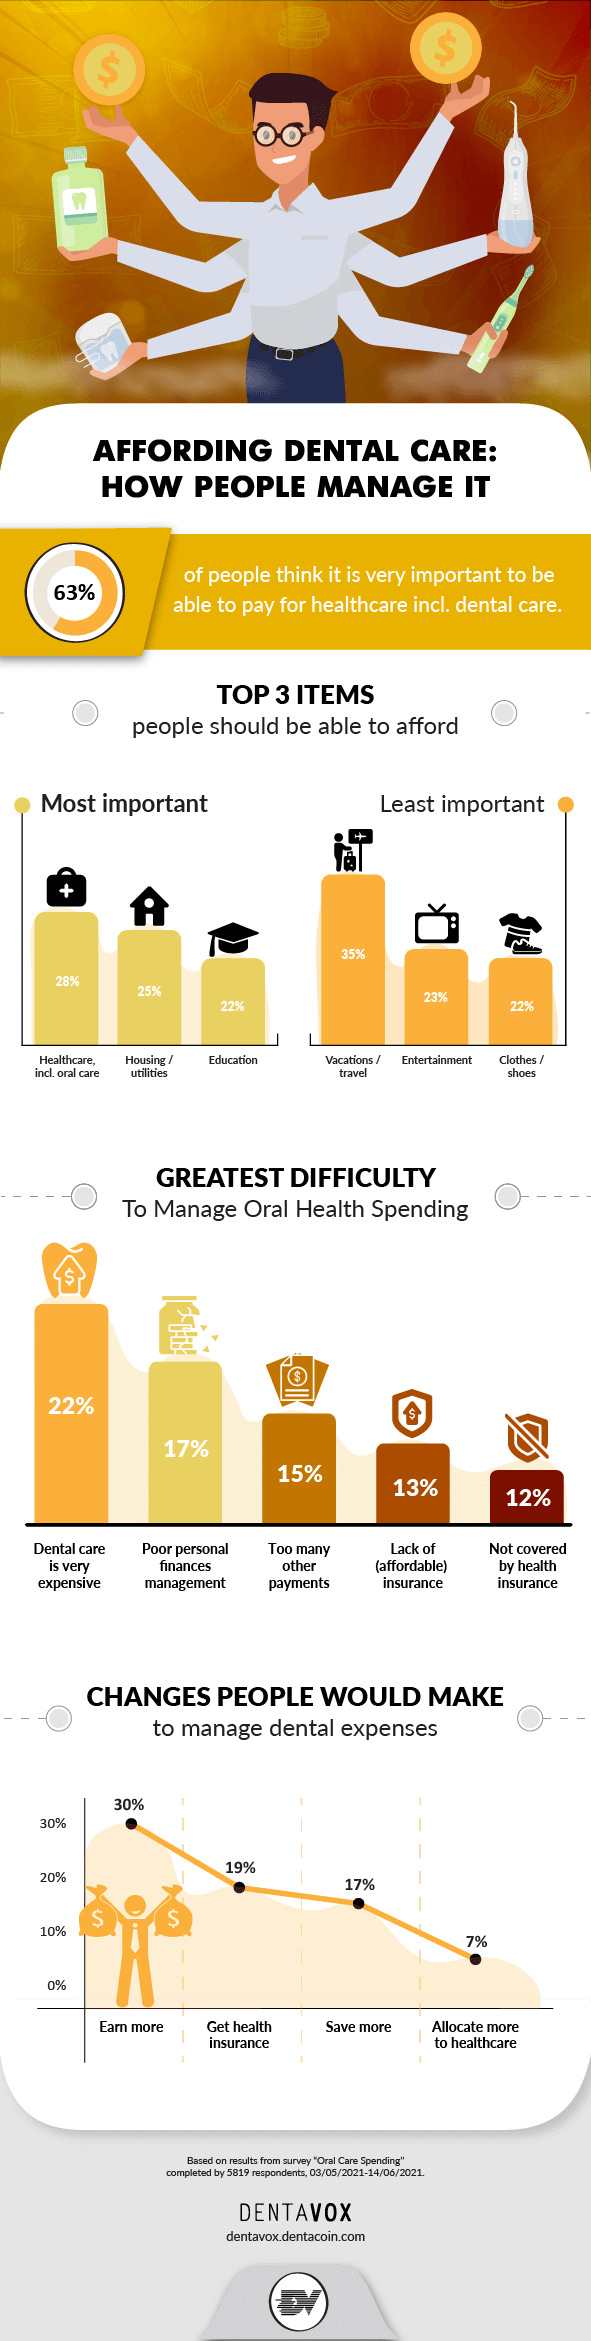 Oral Health and Spending